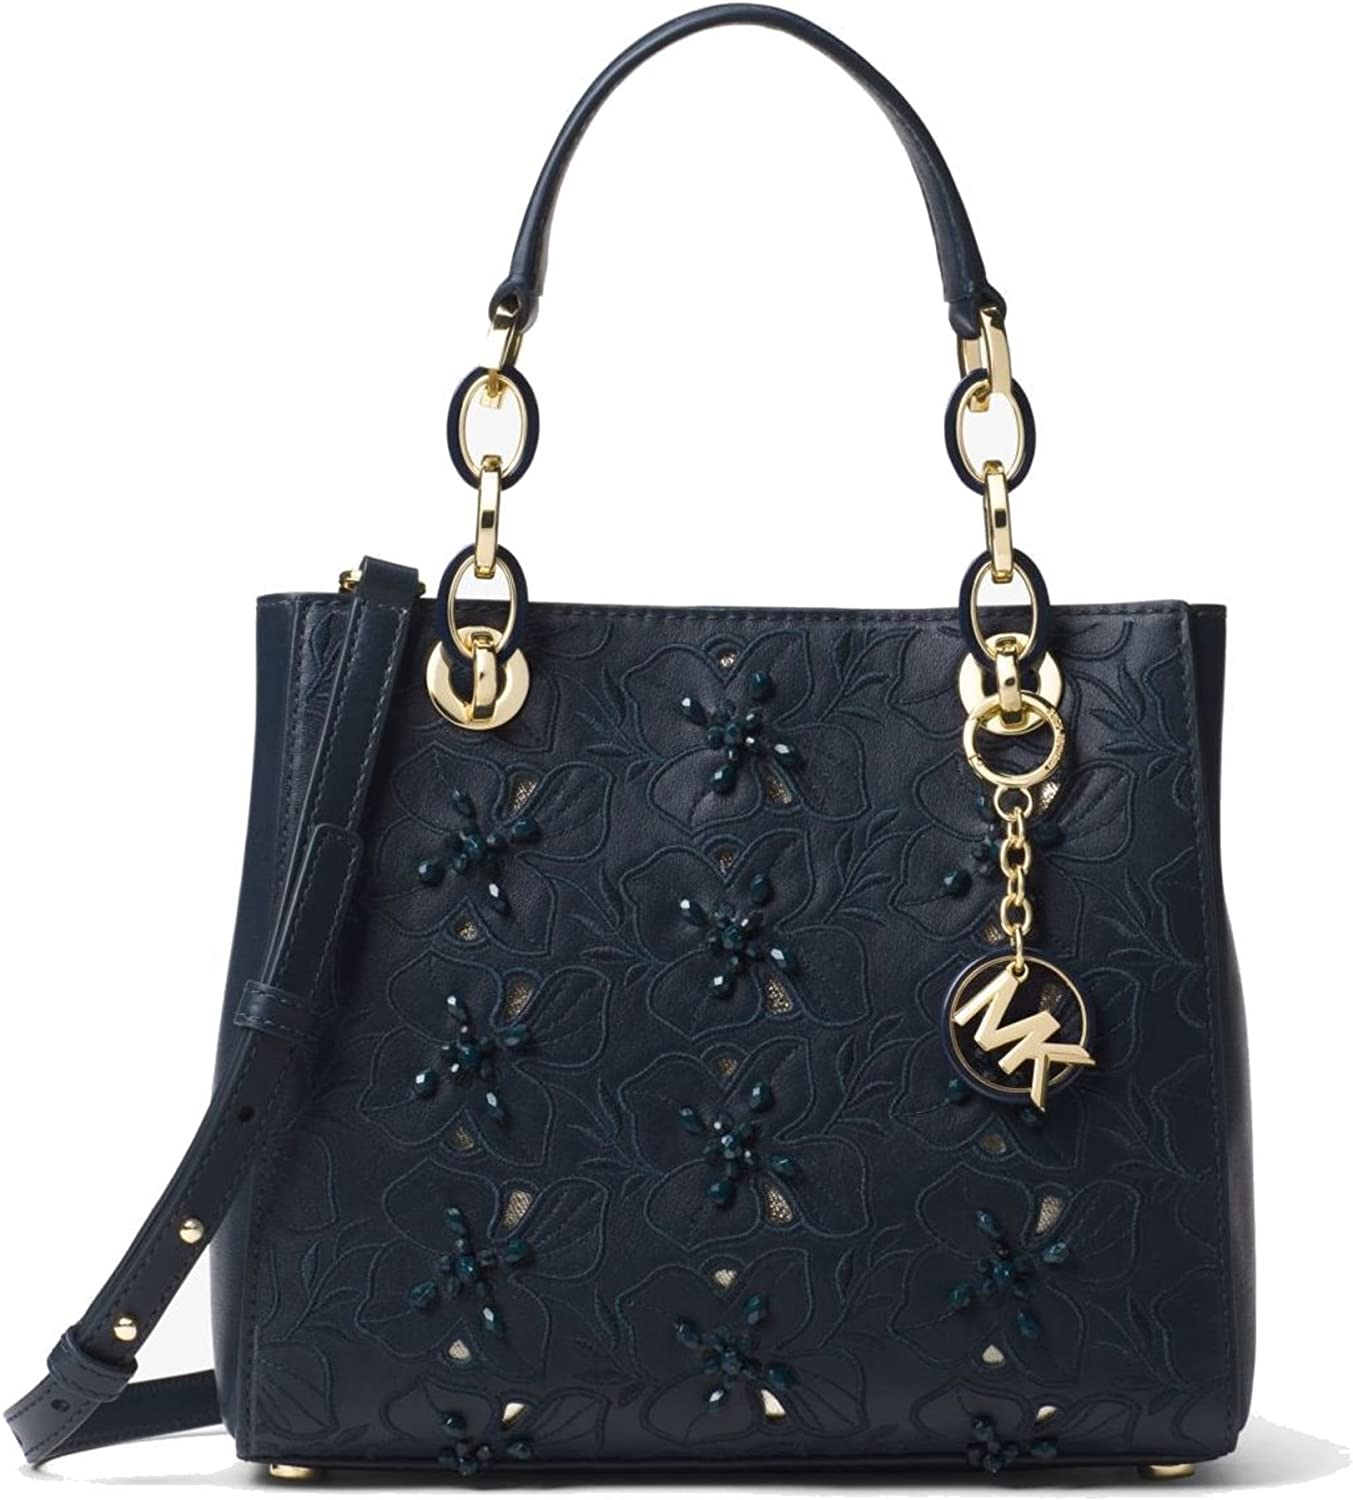 MICHAEL Michael Kors Cynthia Small Floral Embroidered Leather Satchel Bag, Admiral